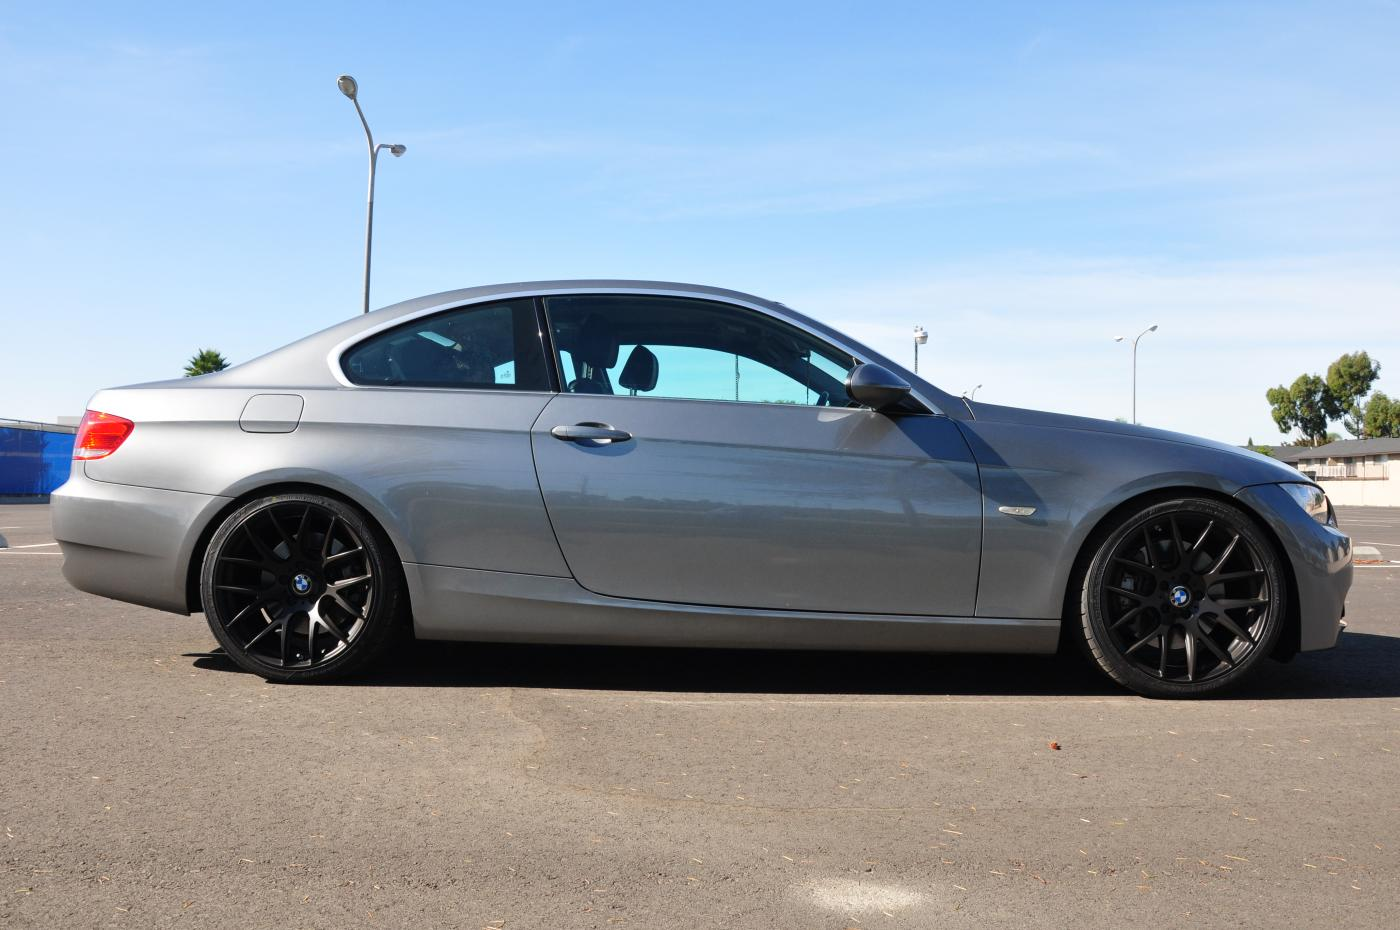 FOR SALE:2007 BMW 335i COUPE(SOCAL)